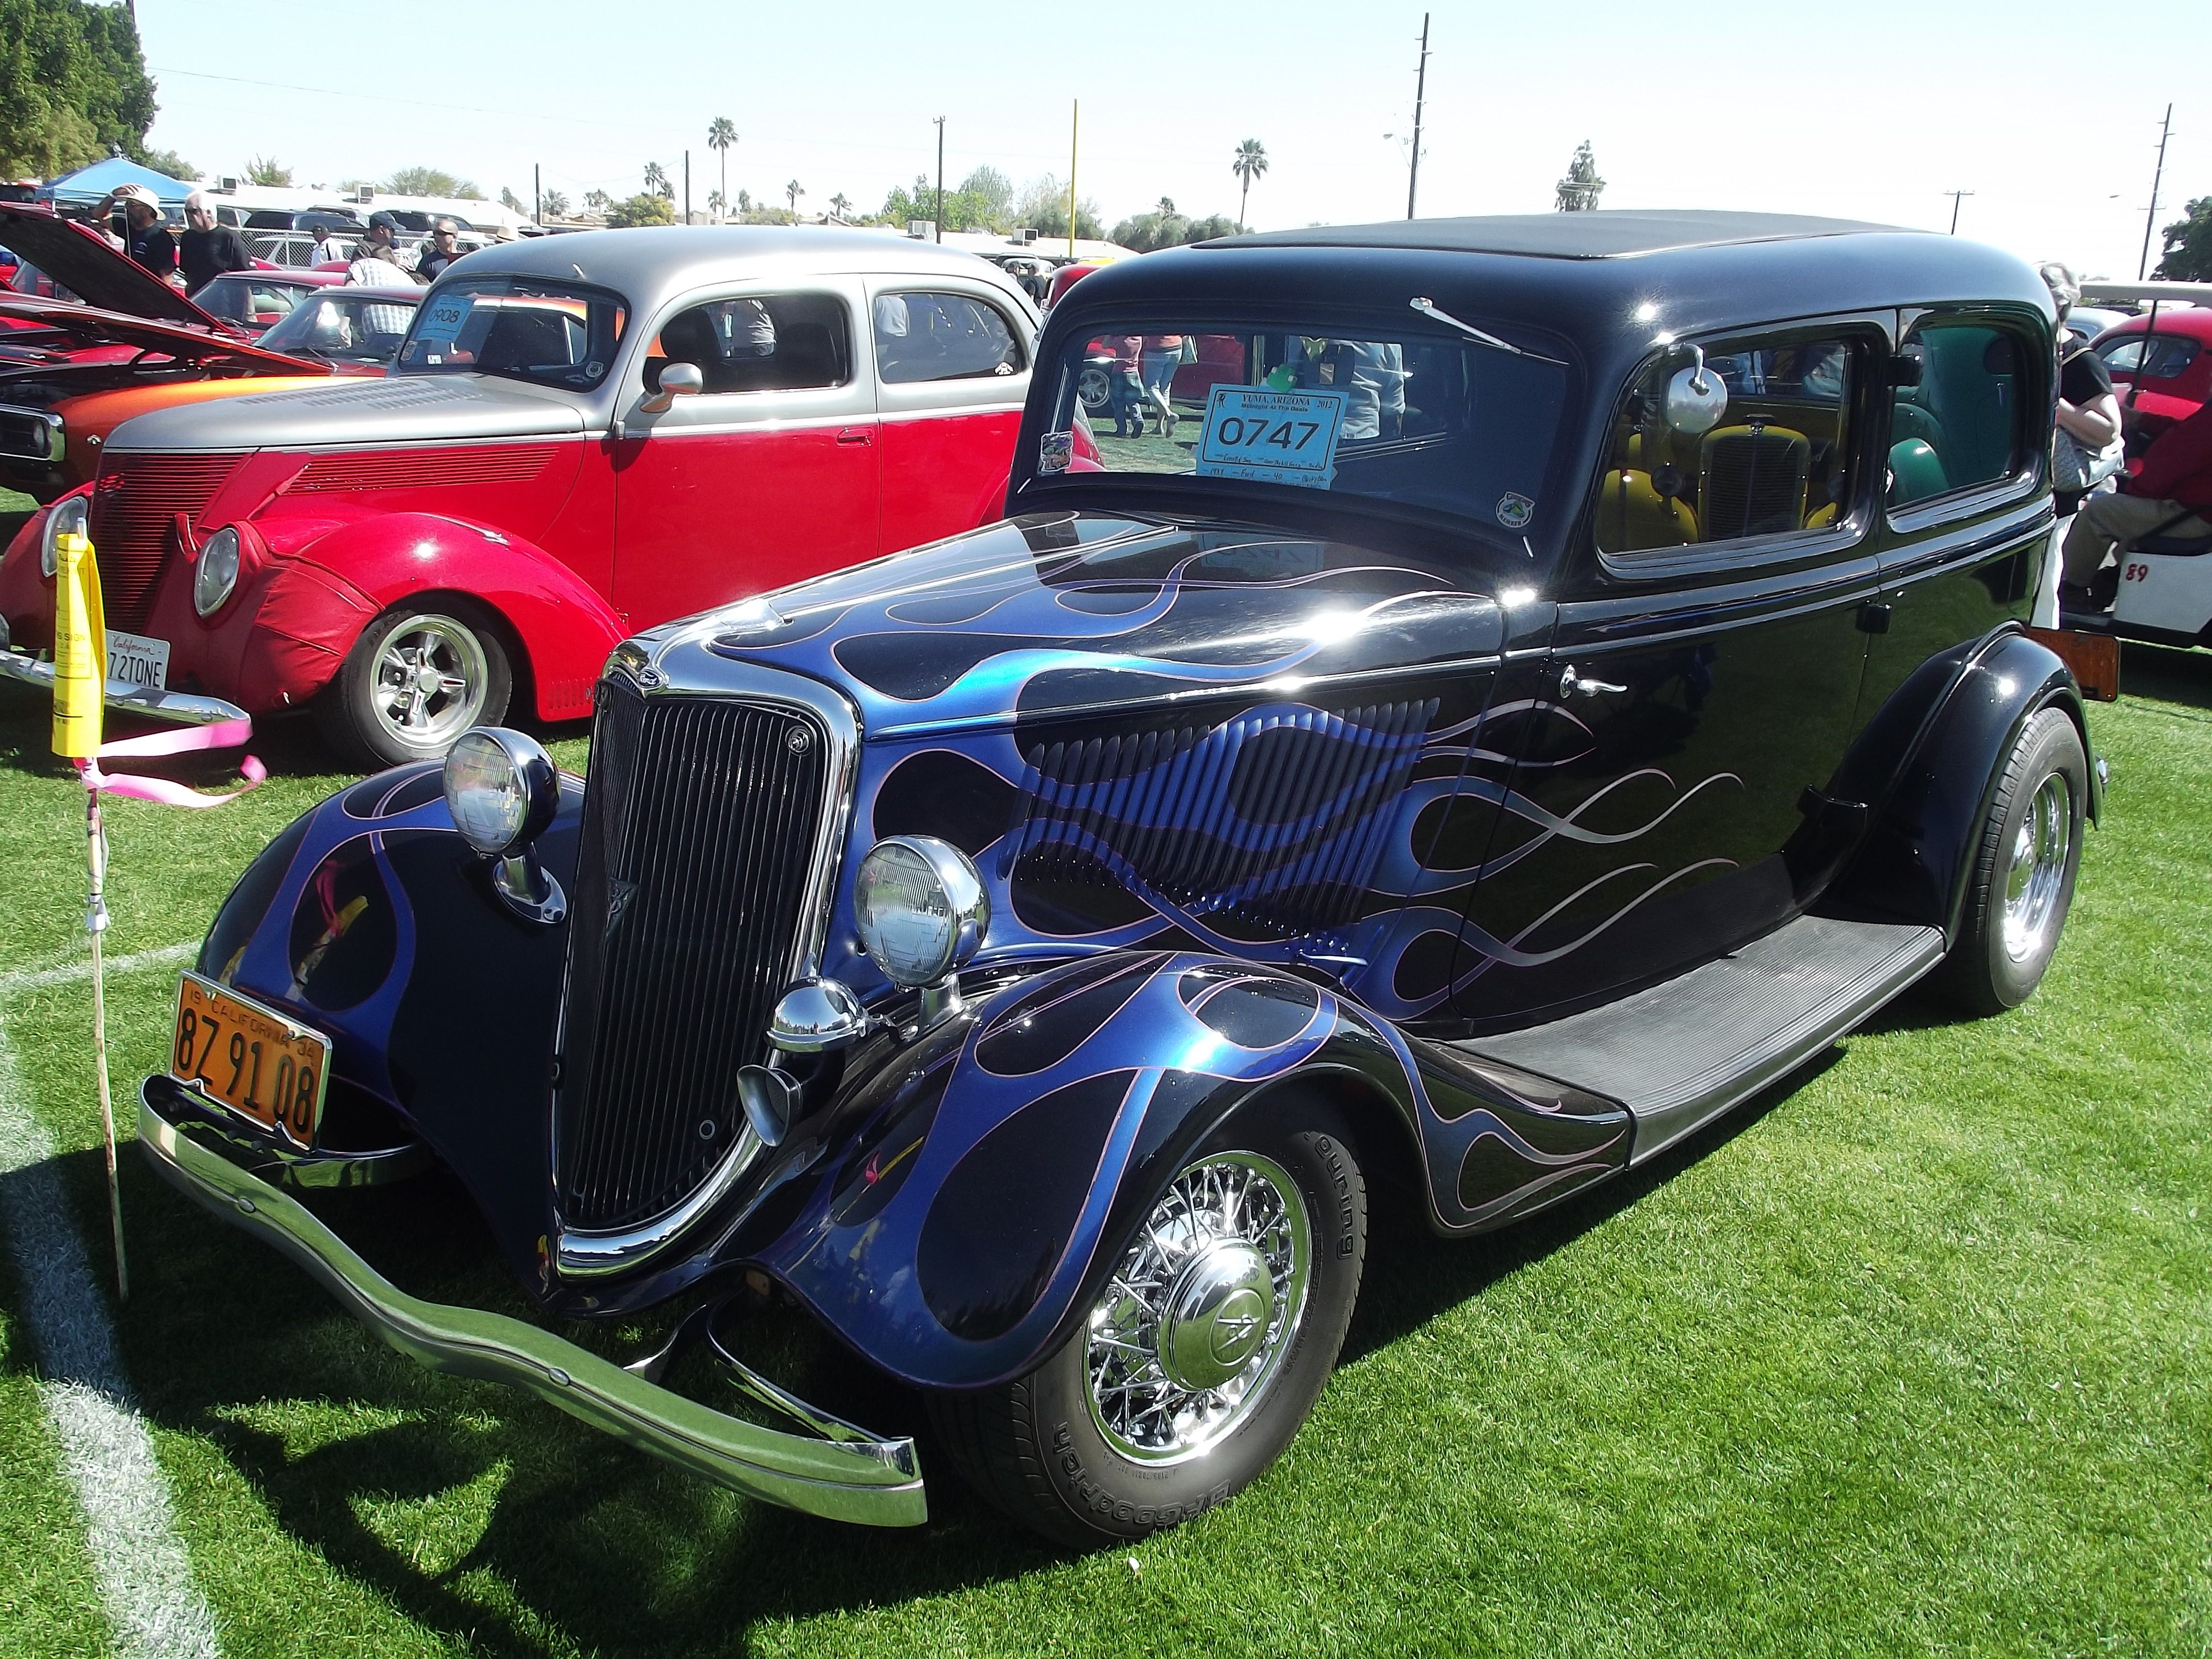 34 Ford Roadster Black & Purple Flame @ Midnight @ the Oasis